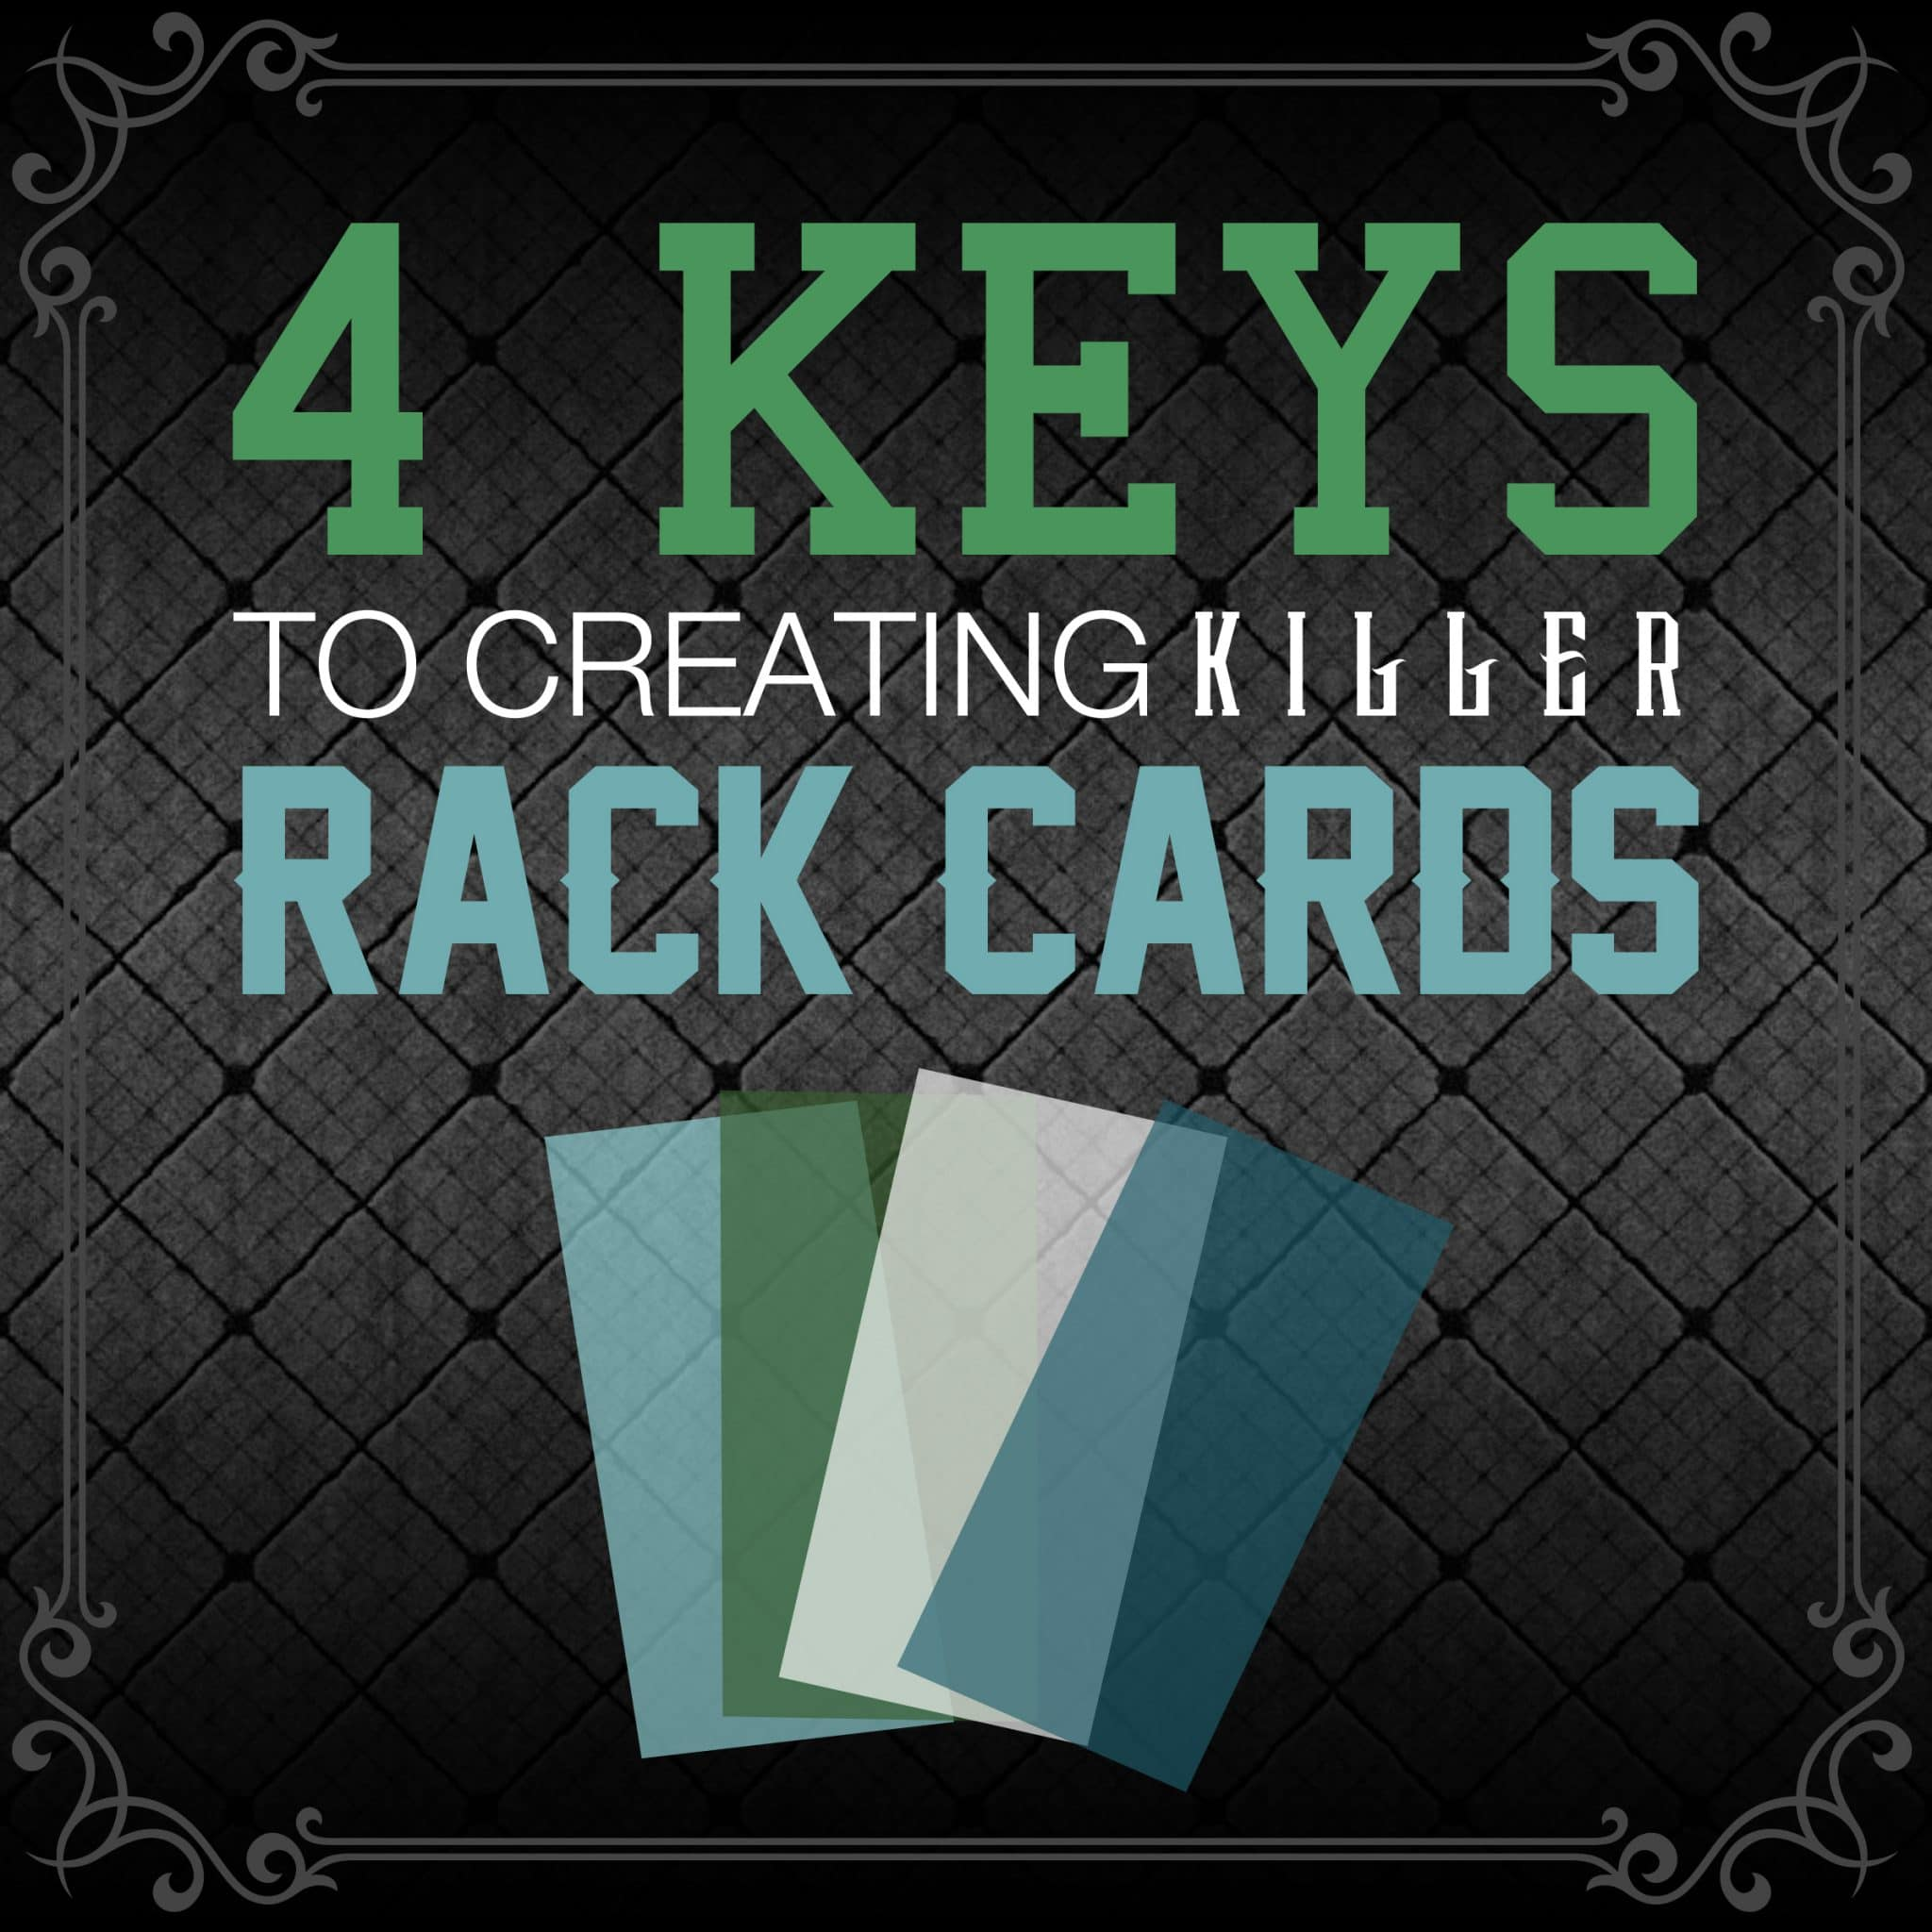 Four keys to creating killer rack cards for your business tom co printing staten island rack card printing colourmoves